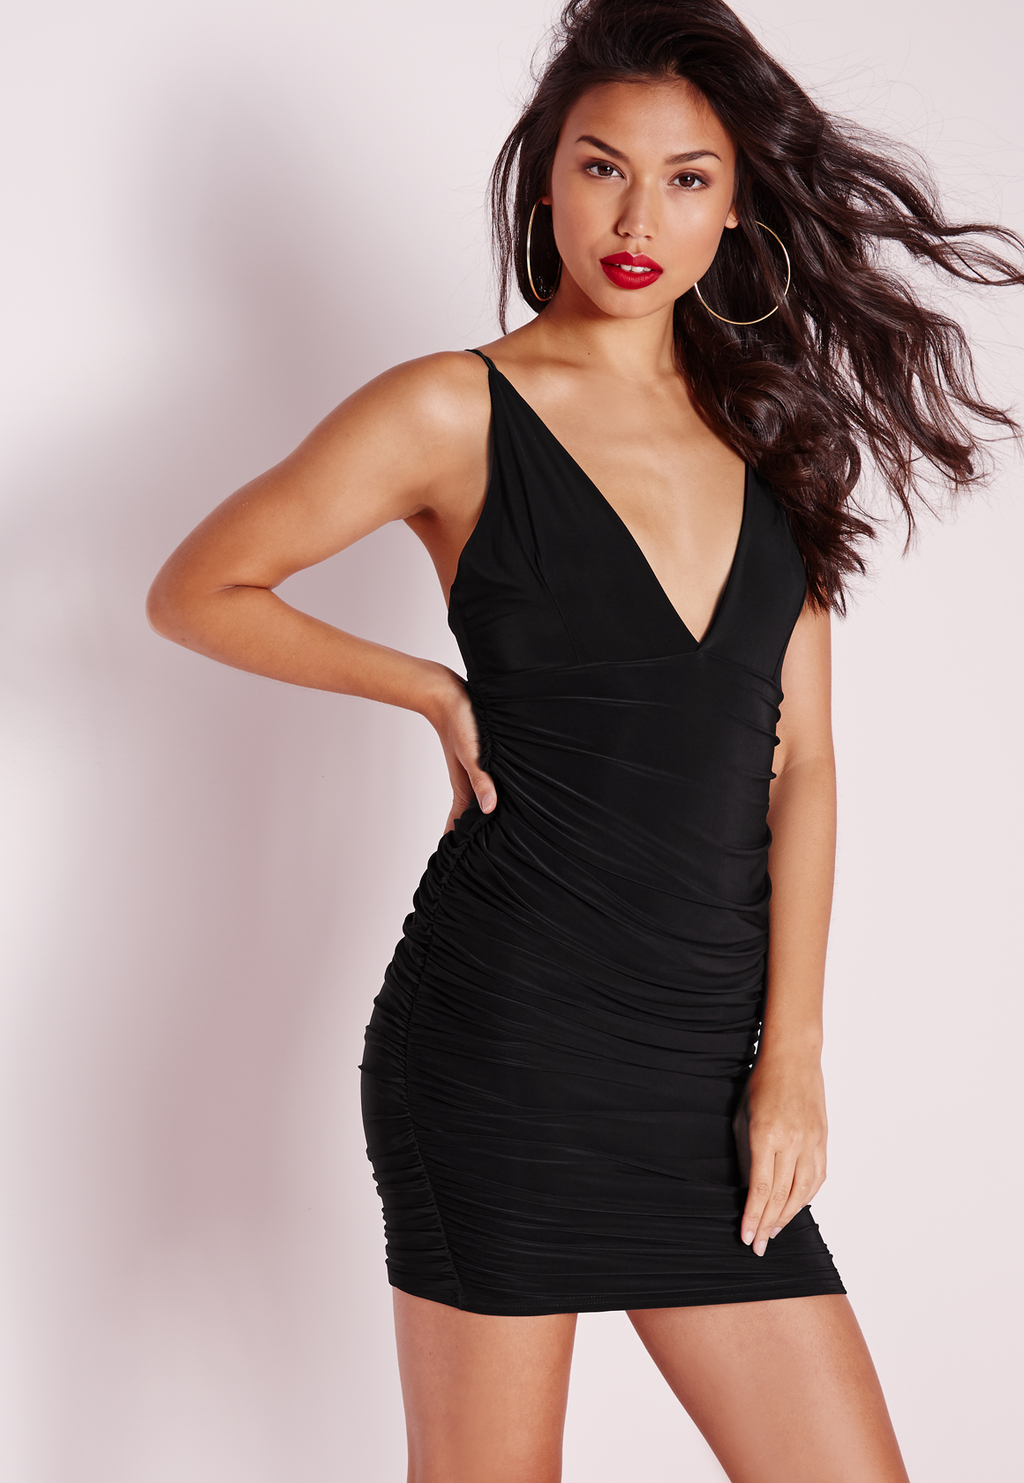 Petite Slinky Double Strap Ruche Bodycon Dress Black, Black - length: mini; neckline: low v-neck; fit: tight; pattern: plain; sleeve style: sleeveless; style: bodycon; predominant colour: black; occasions: evening; fibres: polyester/polyamide - stretch; sleeve length: sleeveless; texture group: jersey - clingy; pattern type: fabric; season: s/s 2016; wardrobe: event